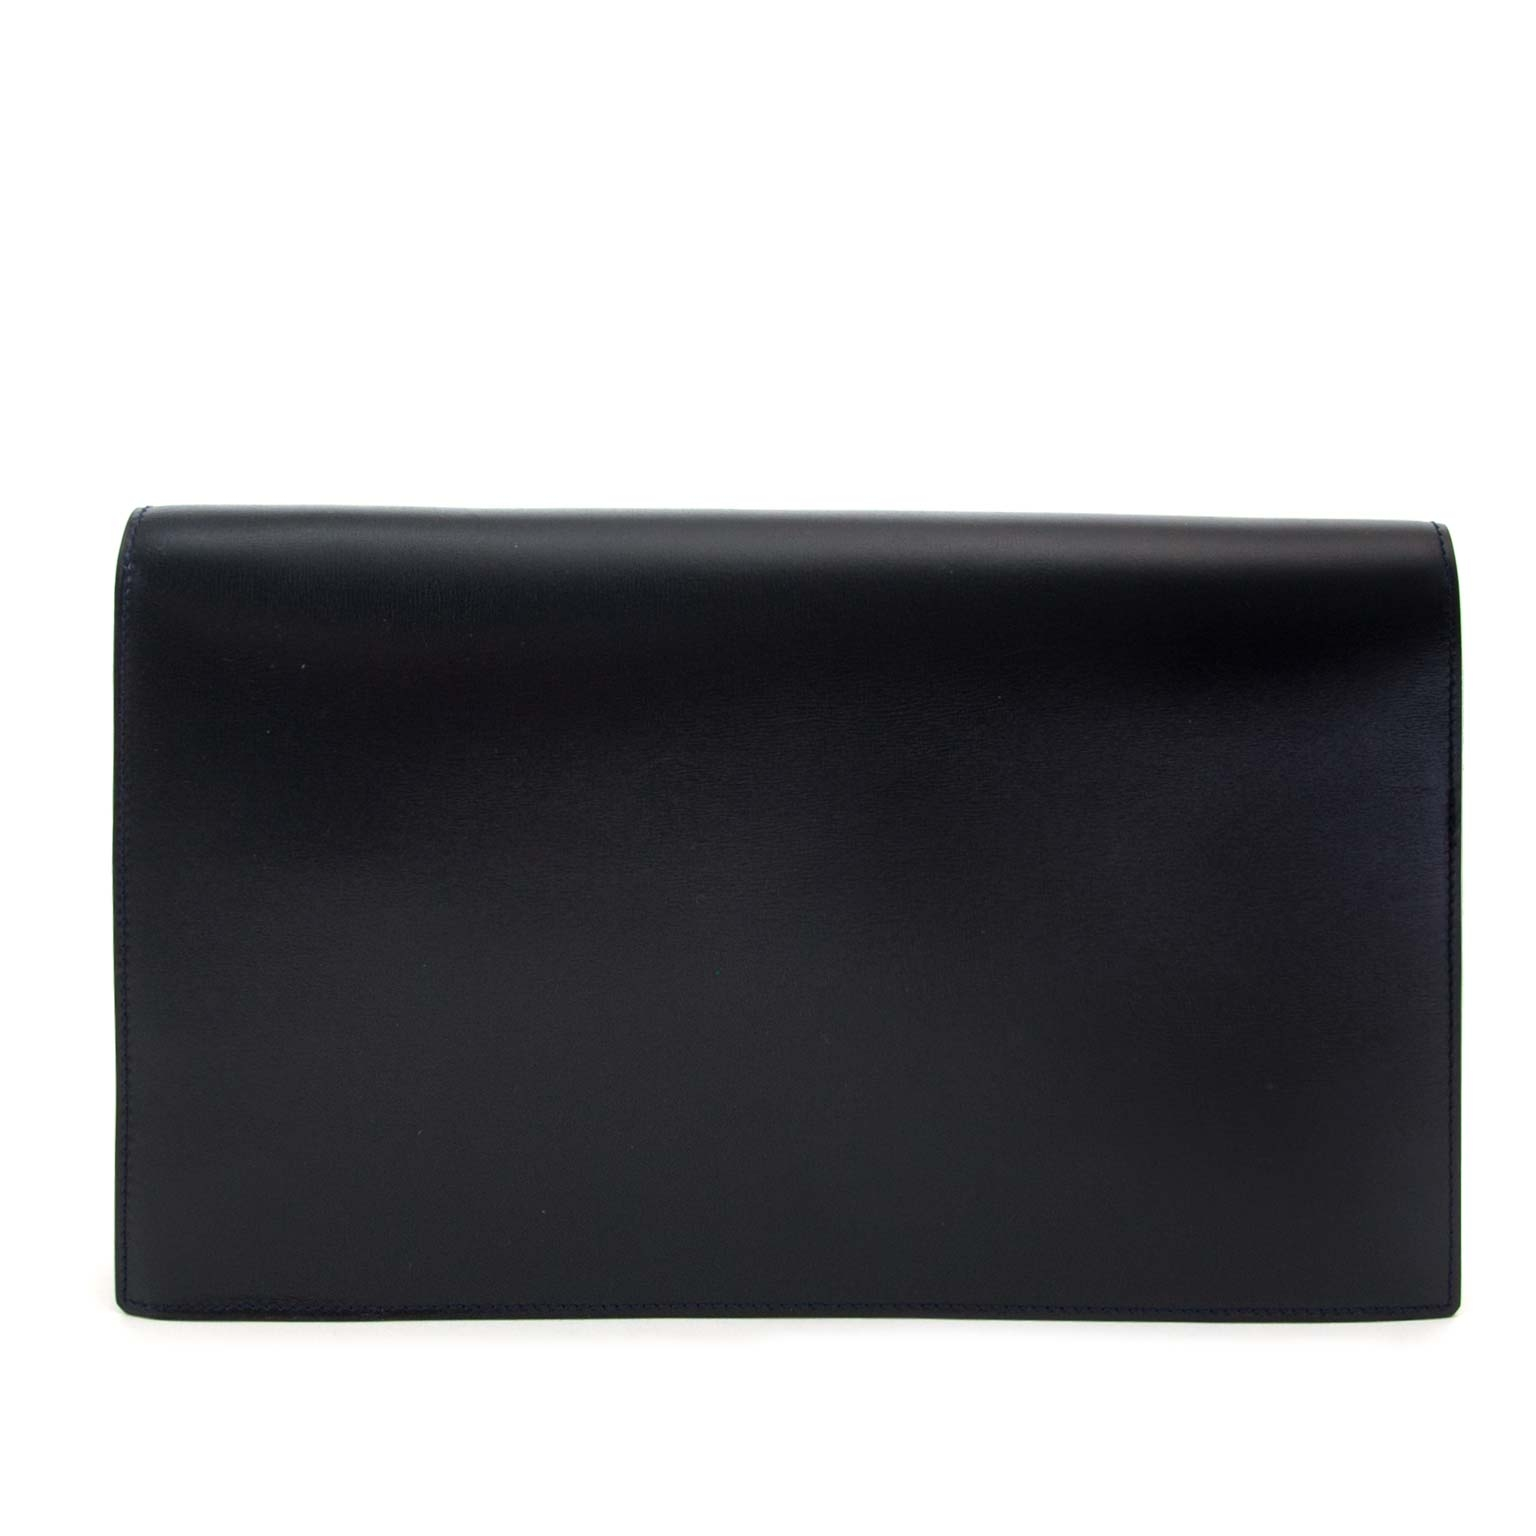 buy Delvaux Dark Blue Leather Clutch and pay save online